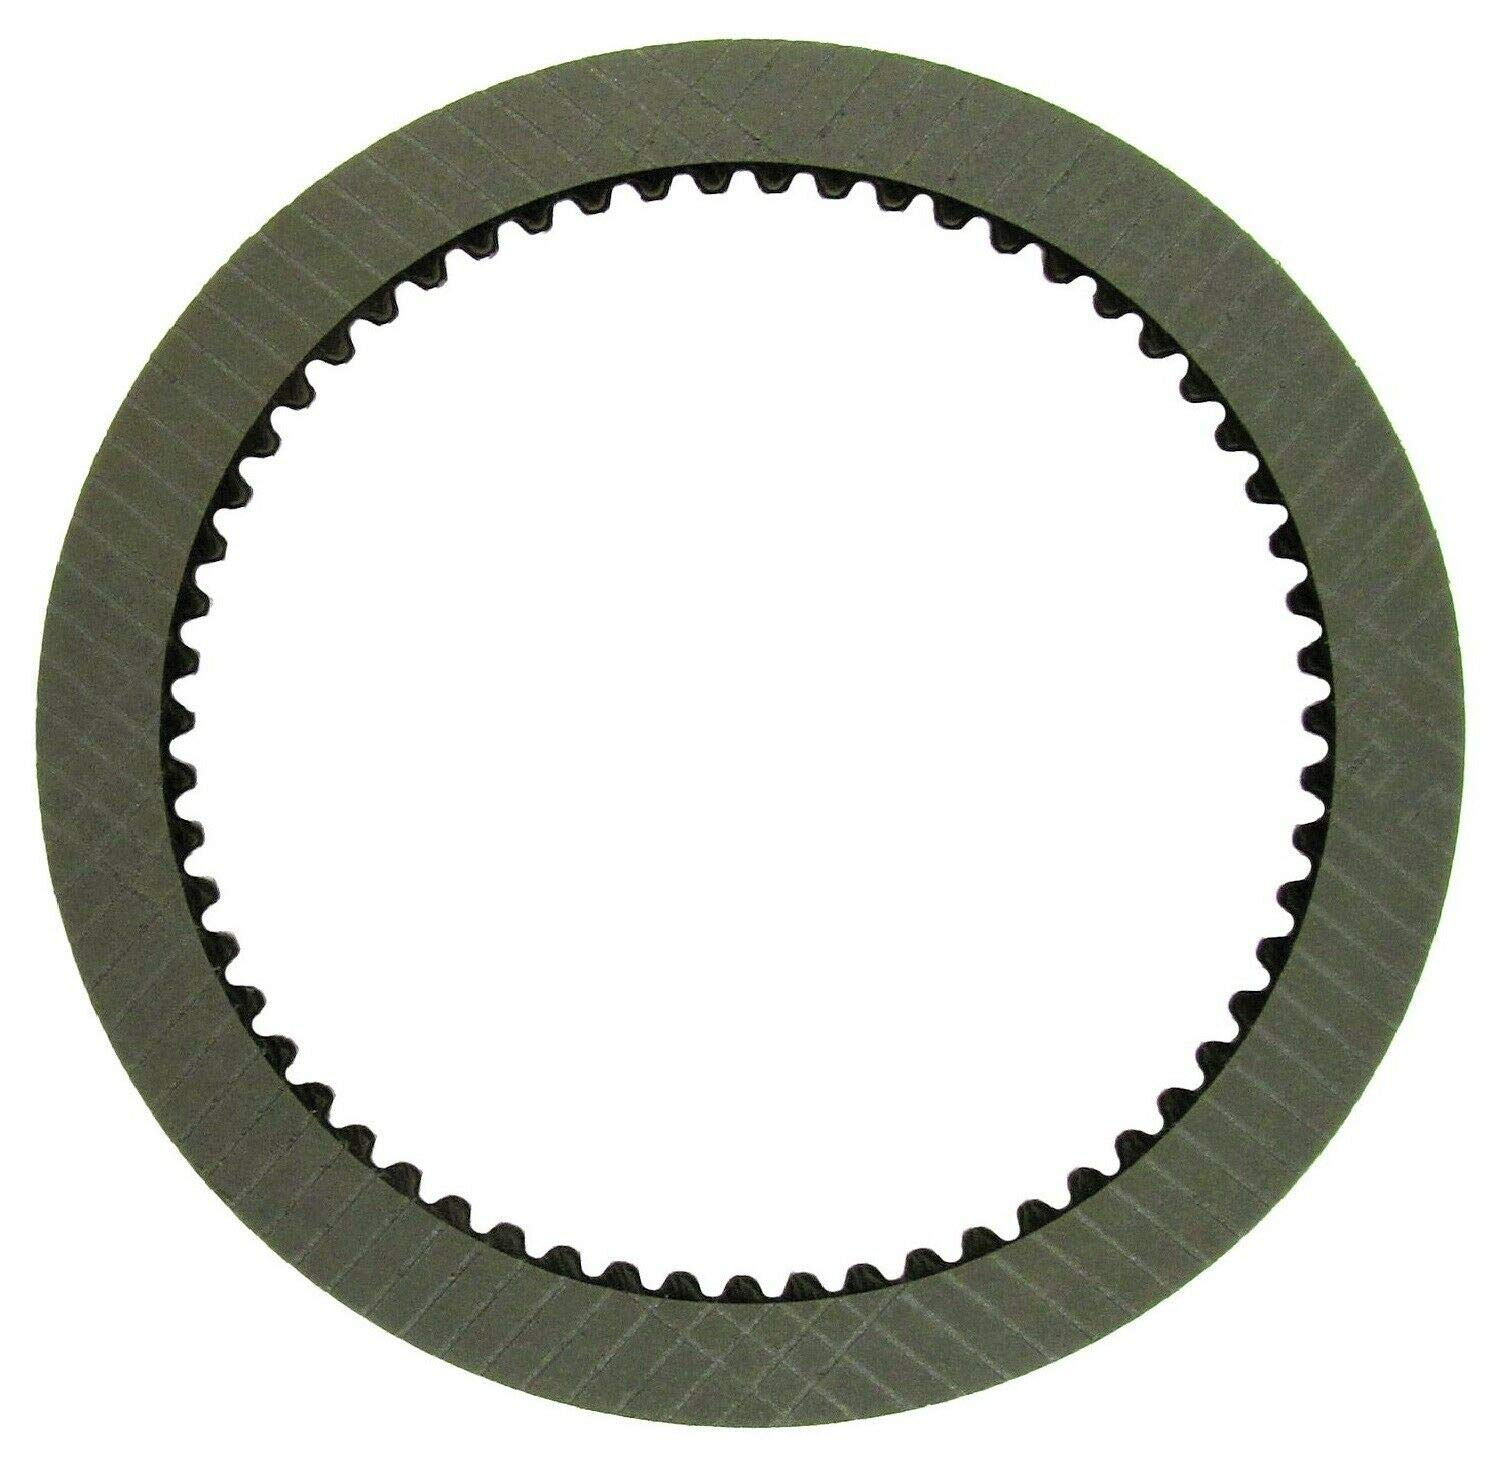 Clutch Friction Plate, 10-17-666-001, 023738A, NSN 2520-01-129-1506, Disk